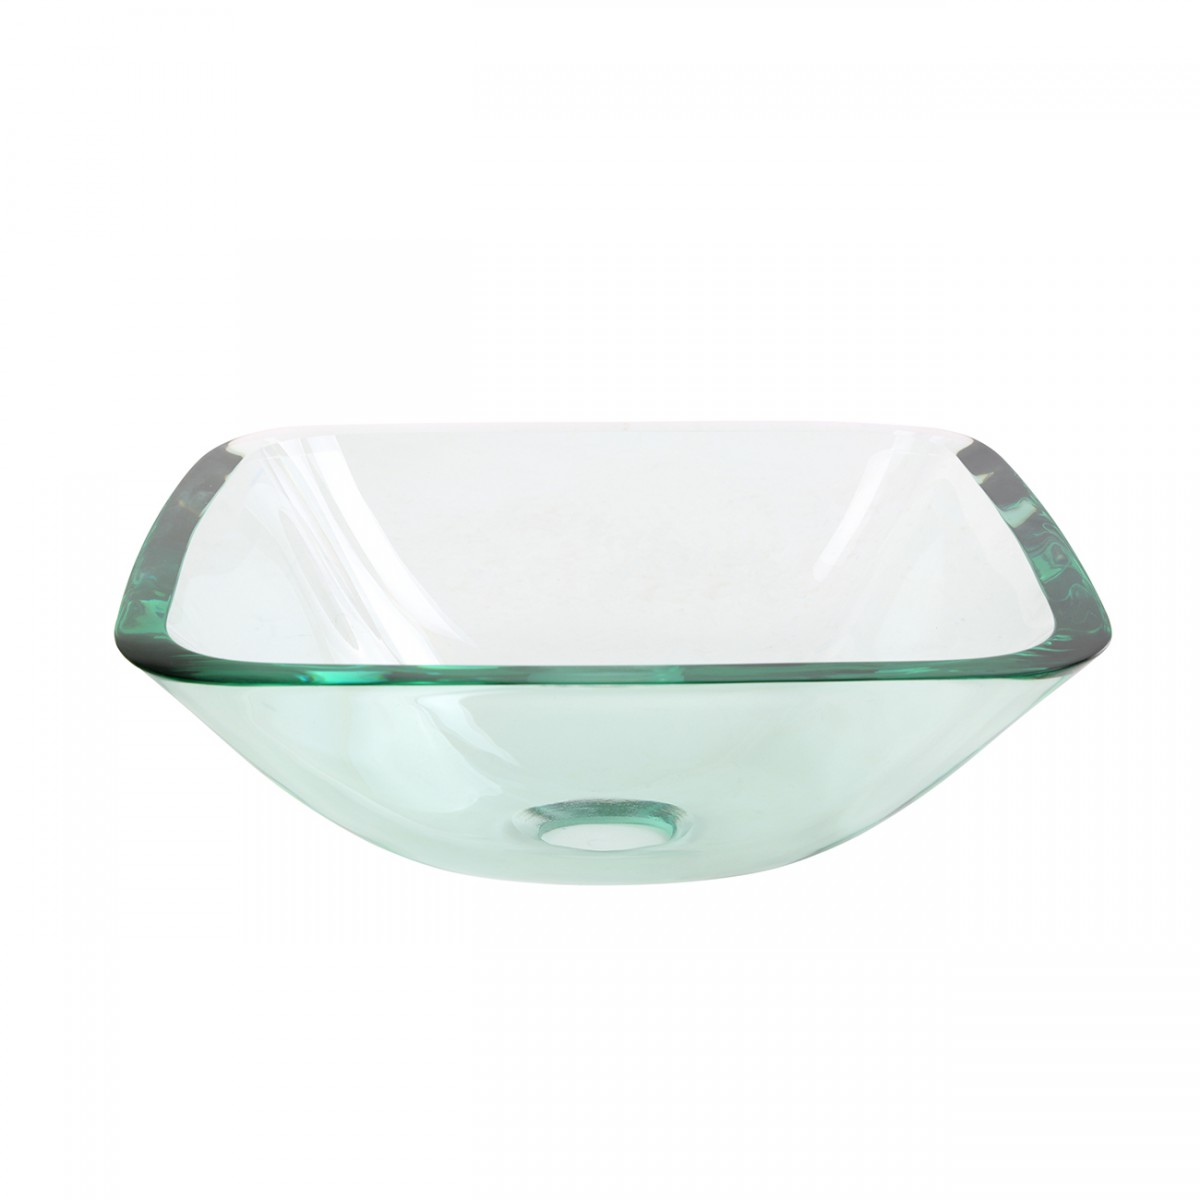 Renovators Supply Tempered Glass Countertop Vessel Sink with Popup Drain bathroom vessel sinks Countertop vessel sink Above Counter Bathroom Sink